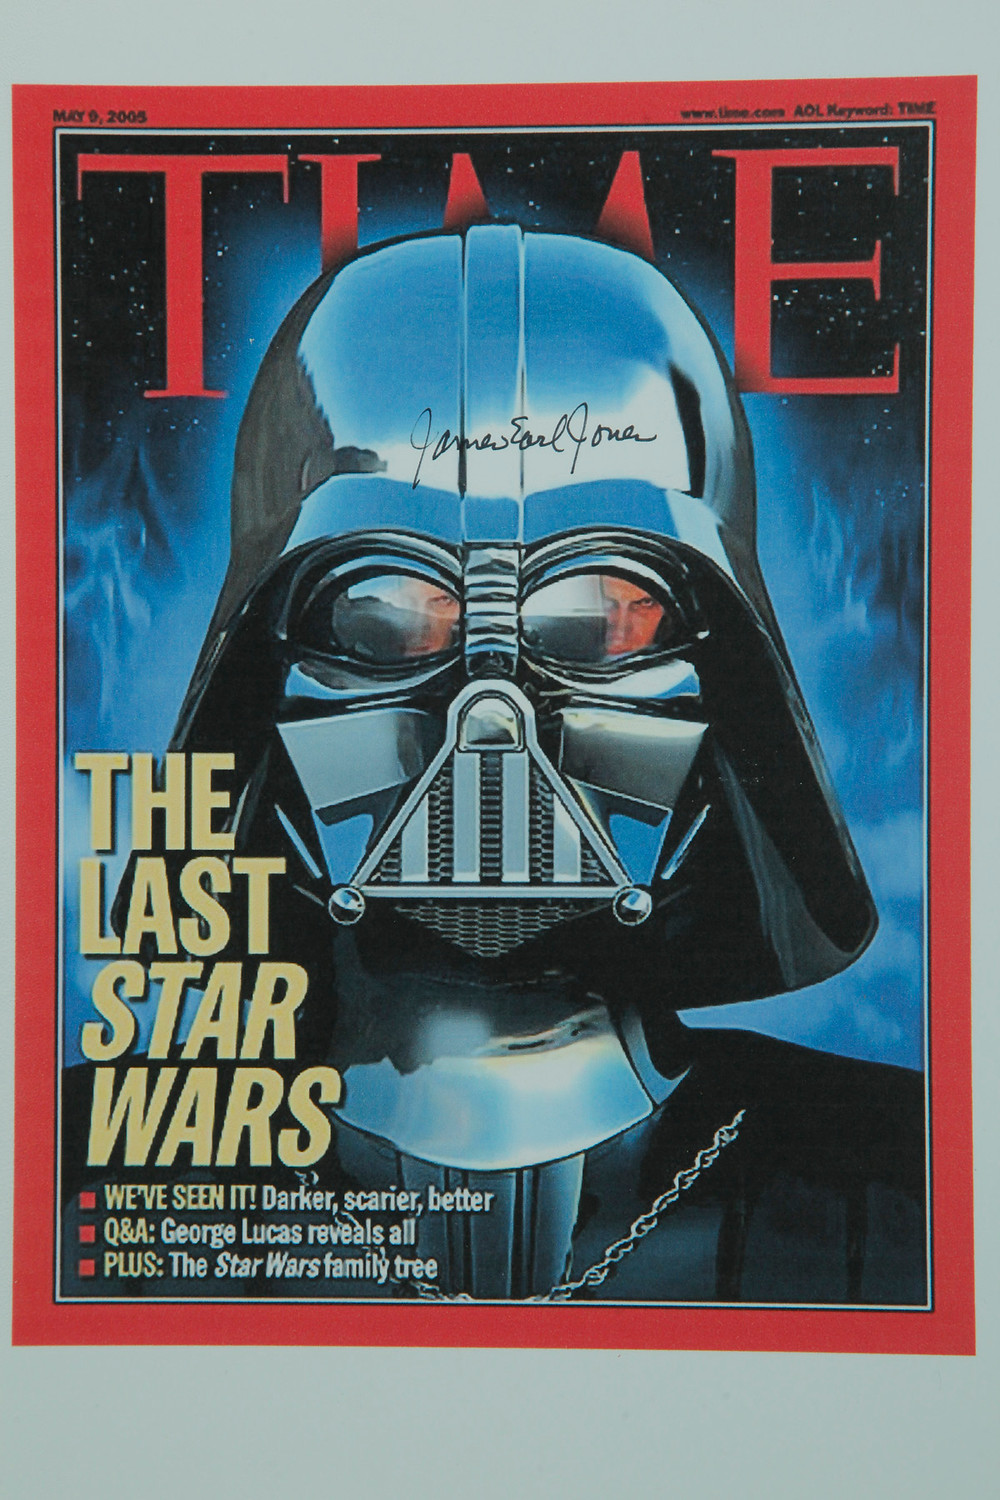 Time Cover signed by James Earl Jones